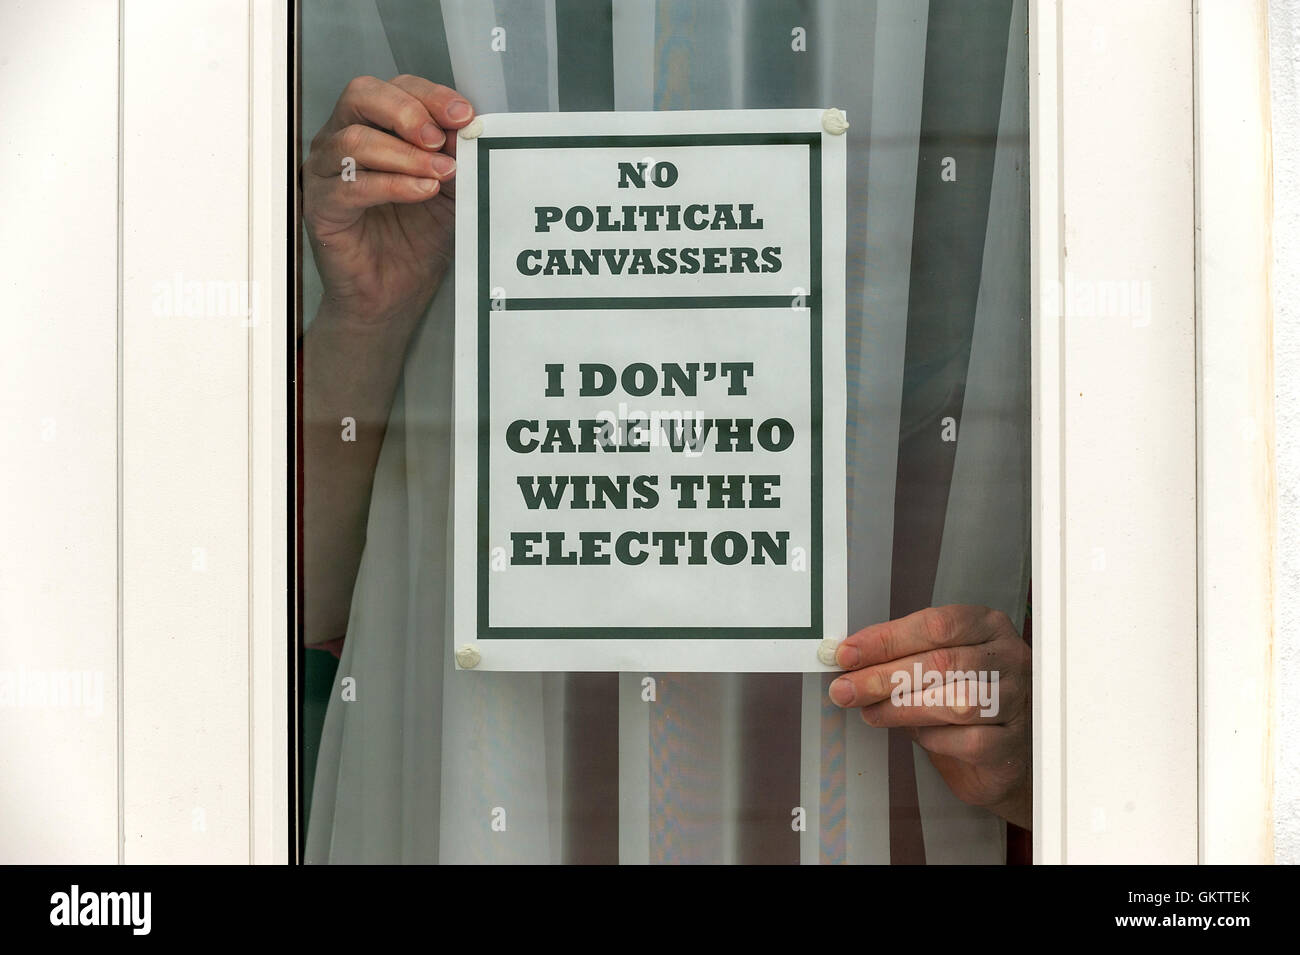 A disgruntled voter expresses their opinion on politicians and campaigners. Stock Photo